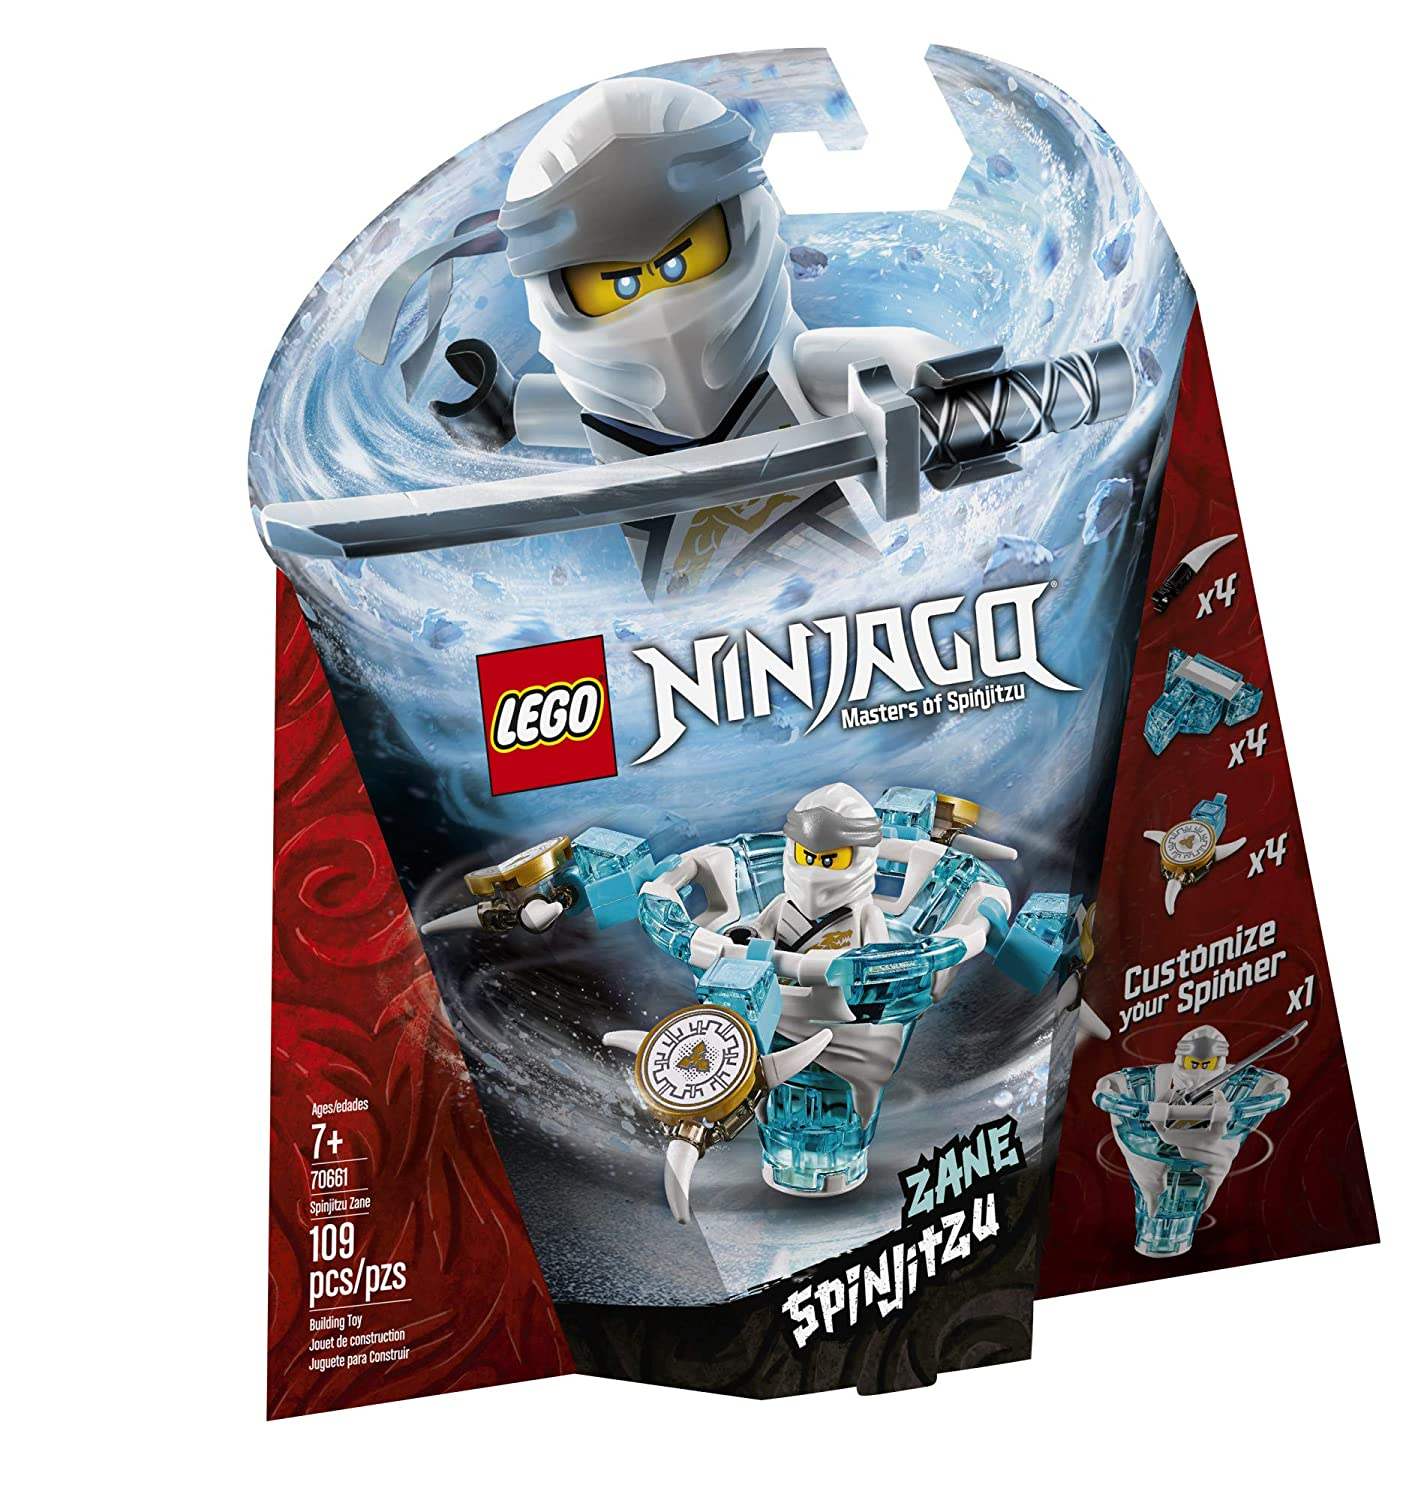 Amazoncom Lego Ninjago Spinjitzu Zane 70661 Building Kit New